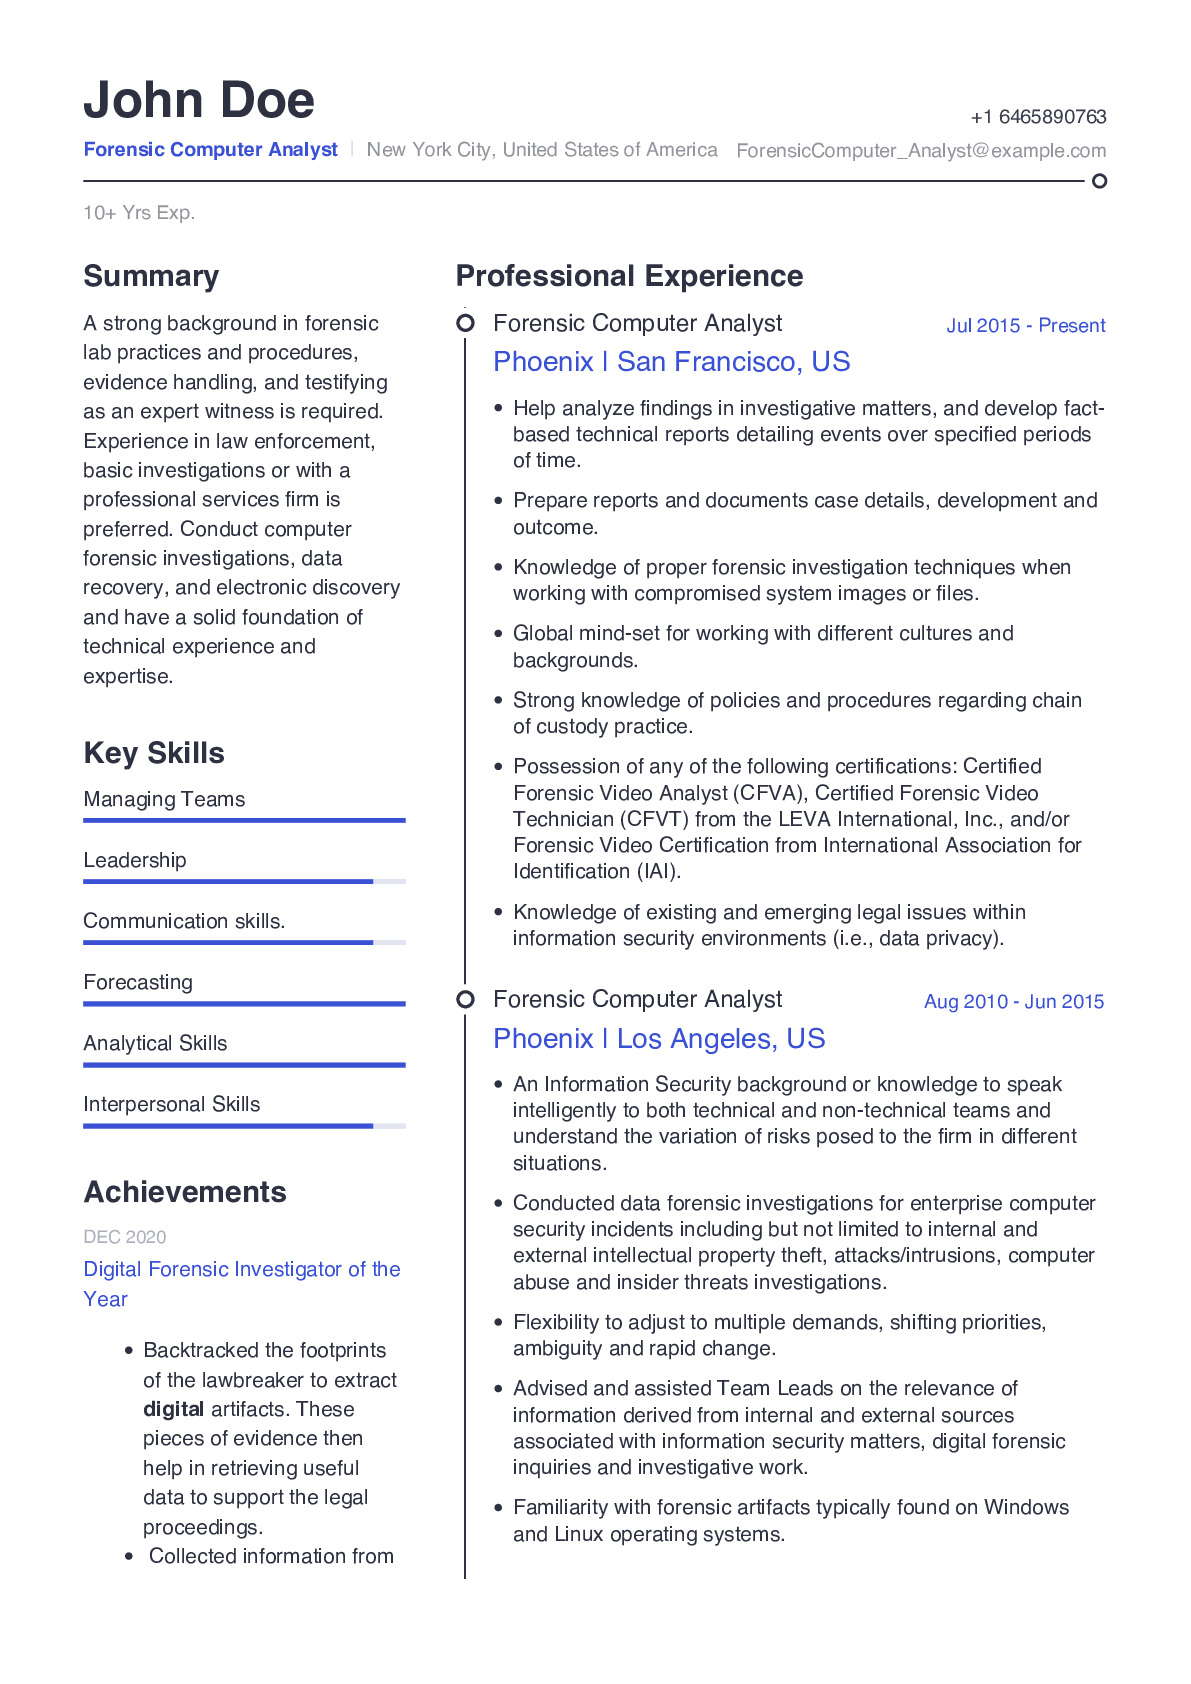 Forensic Computer Analyst Resume Example